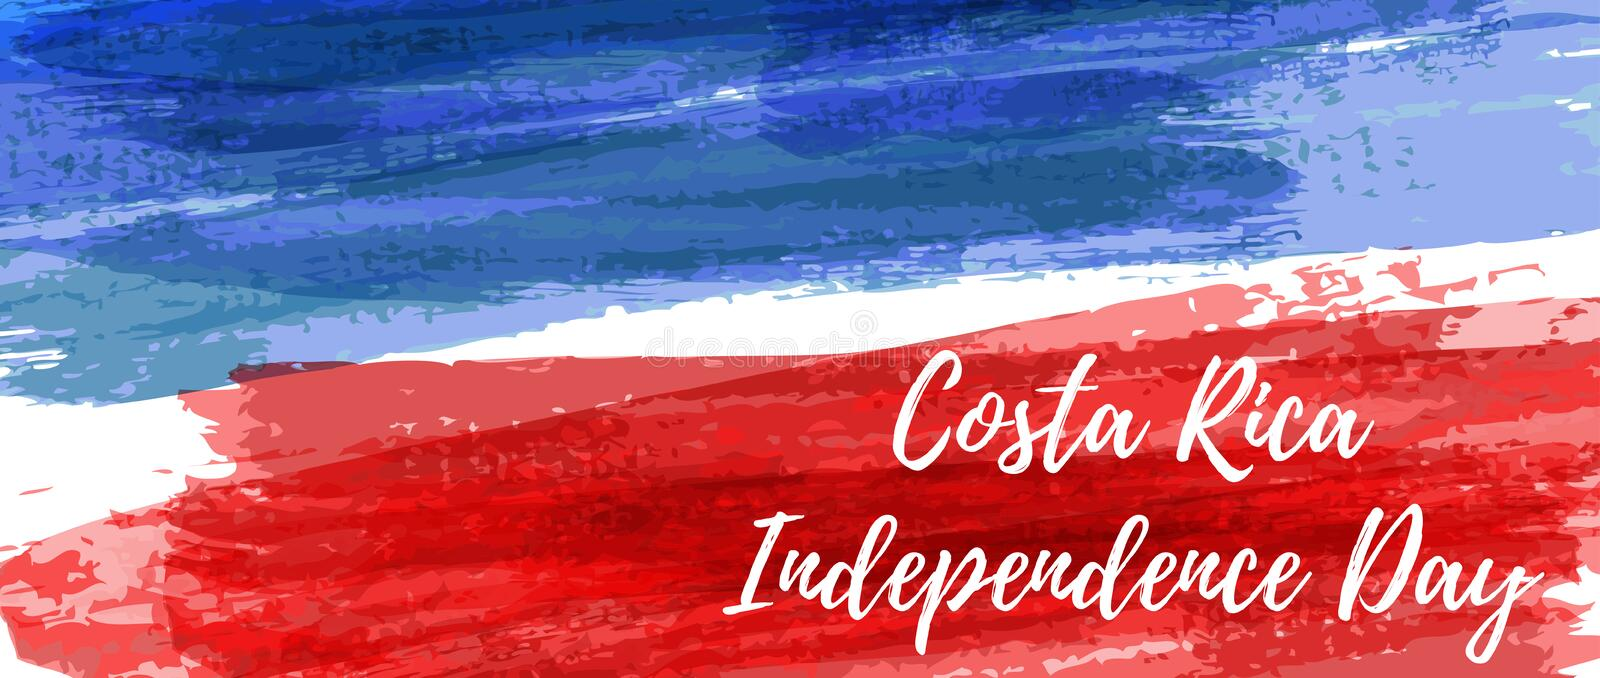 Costa Rica Independence Day banner vector illustration